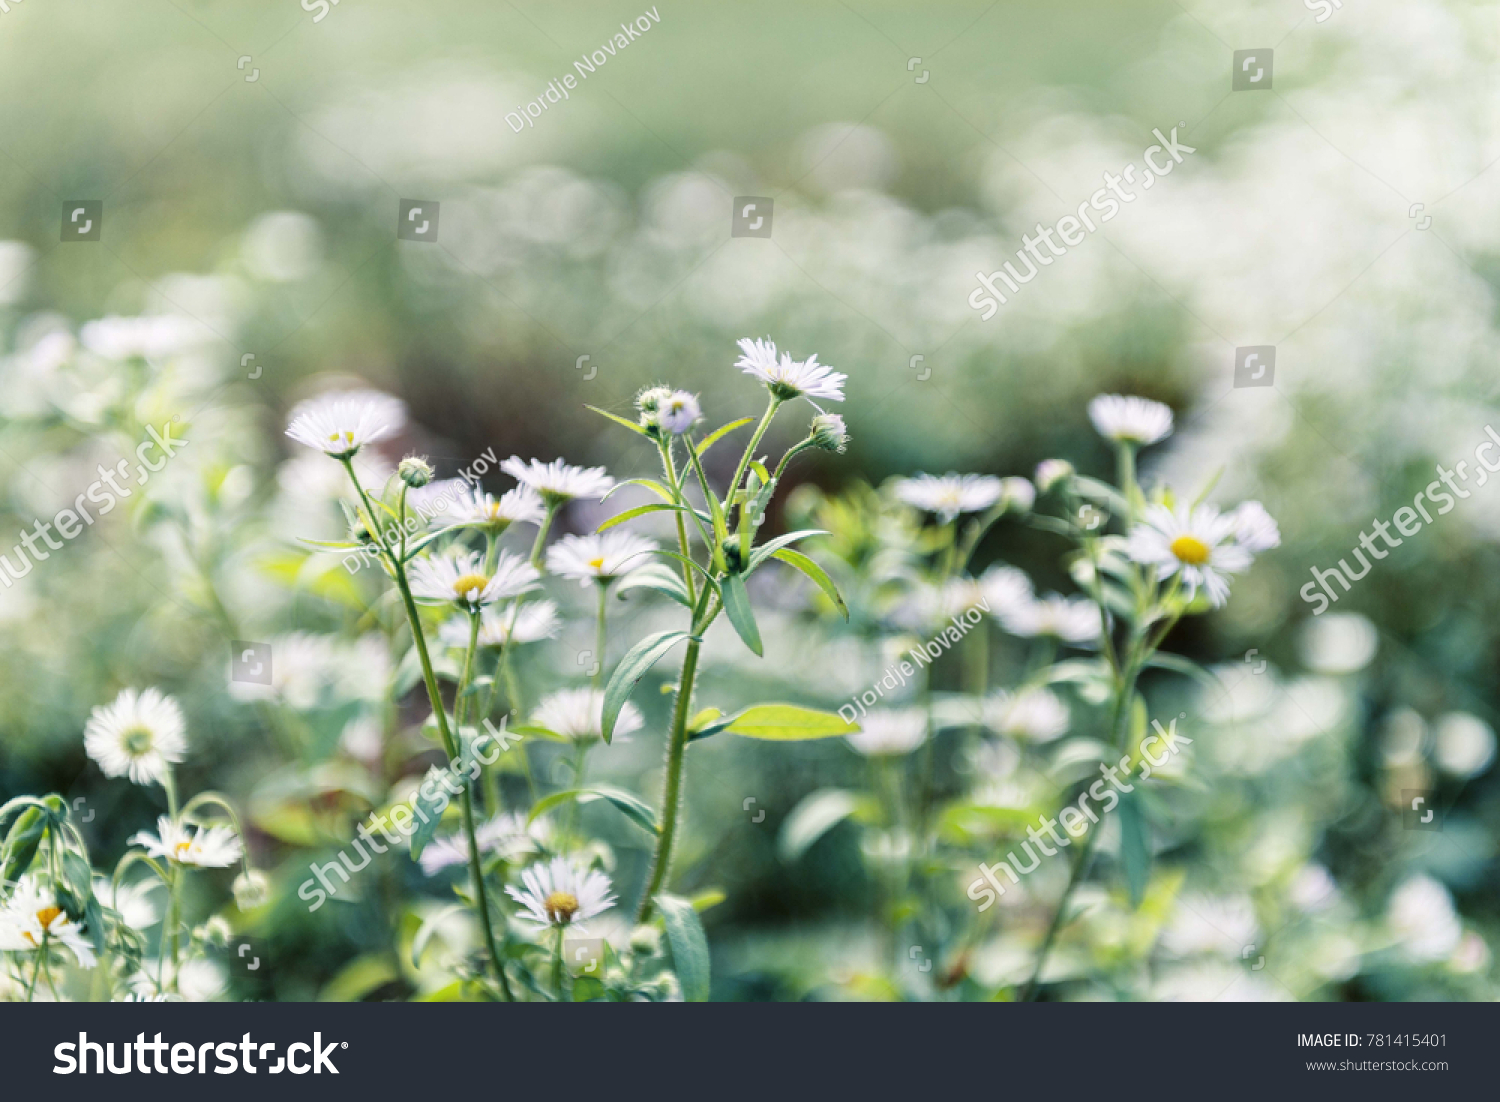 Nature Green Plants With White Flowers Close Up Ez Canvas